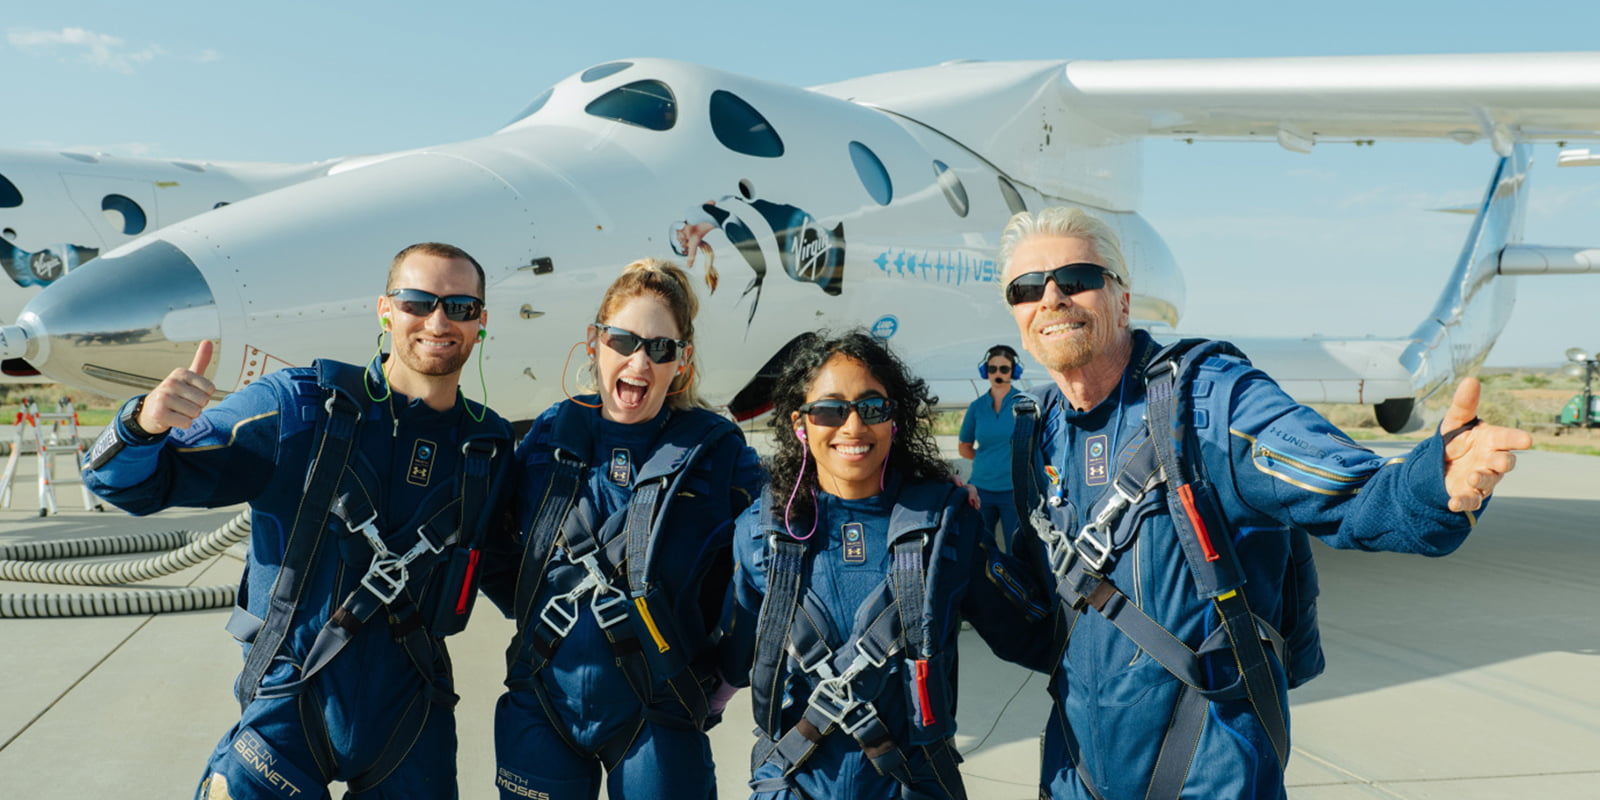 Virgin Galactic launches billionaire Richard Branson to space in a historic space flight with crew